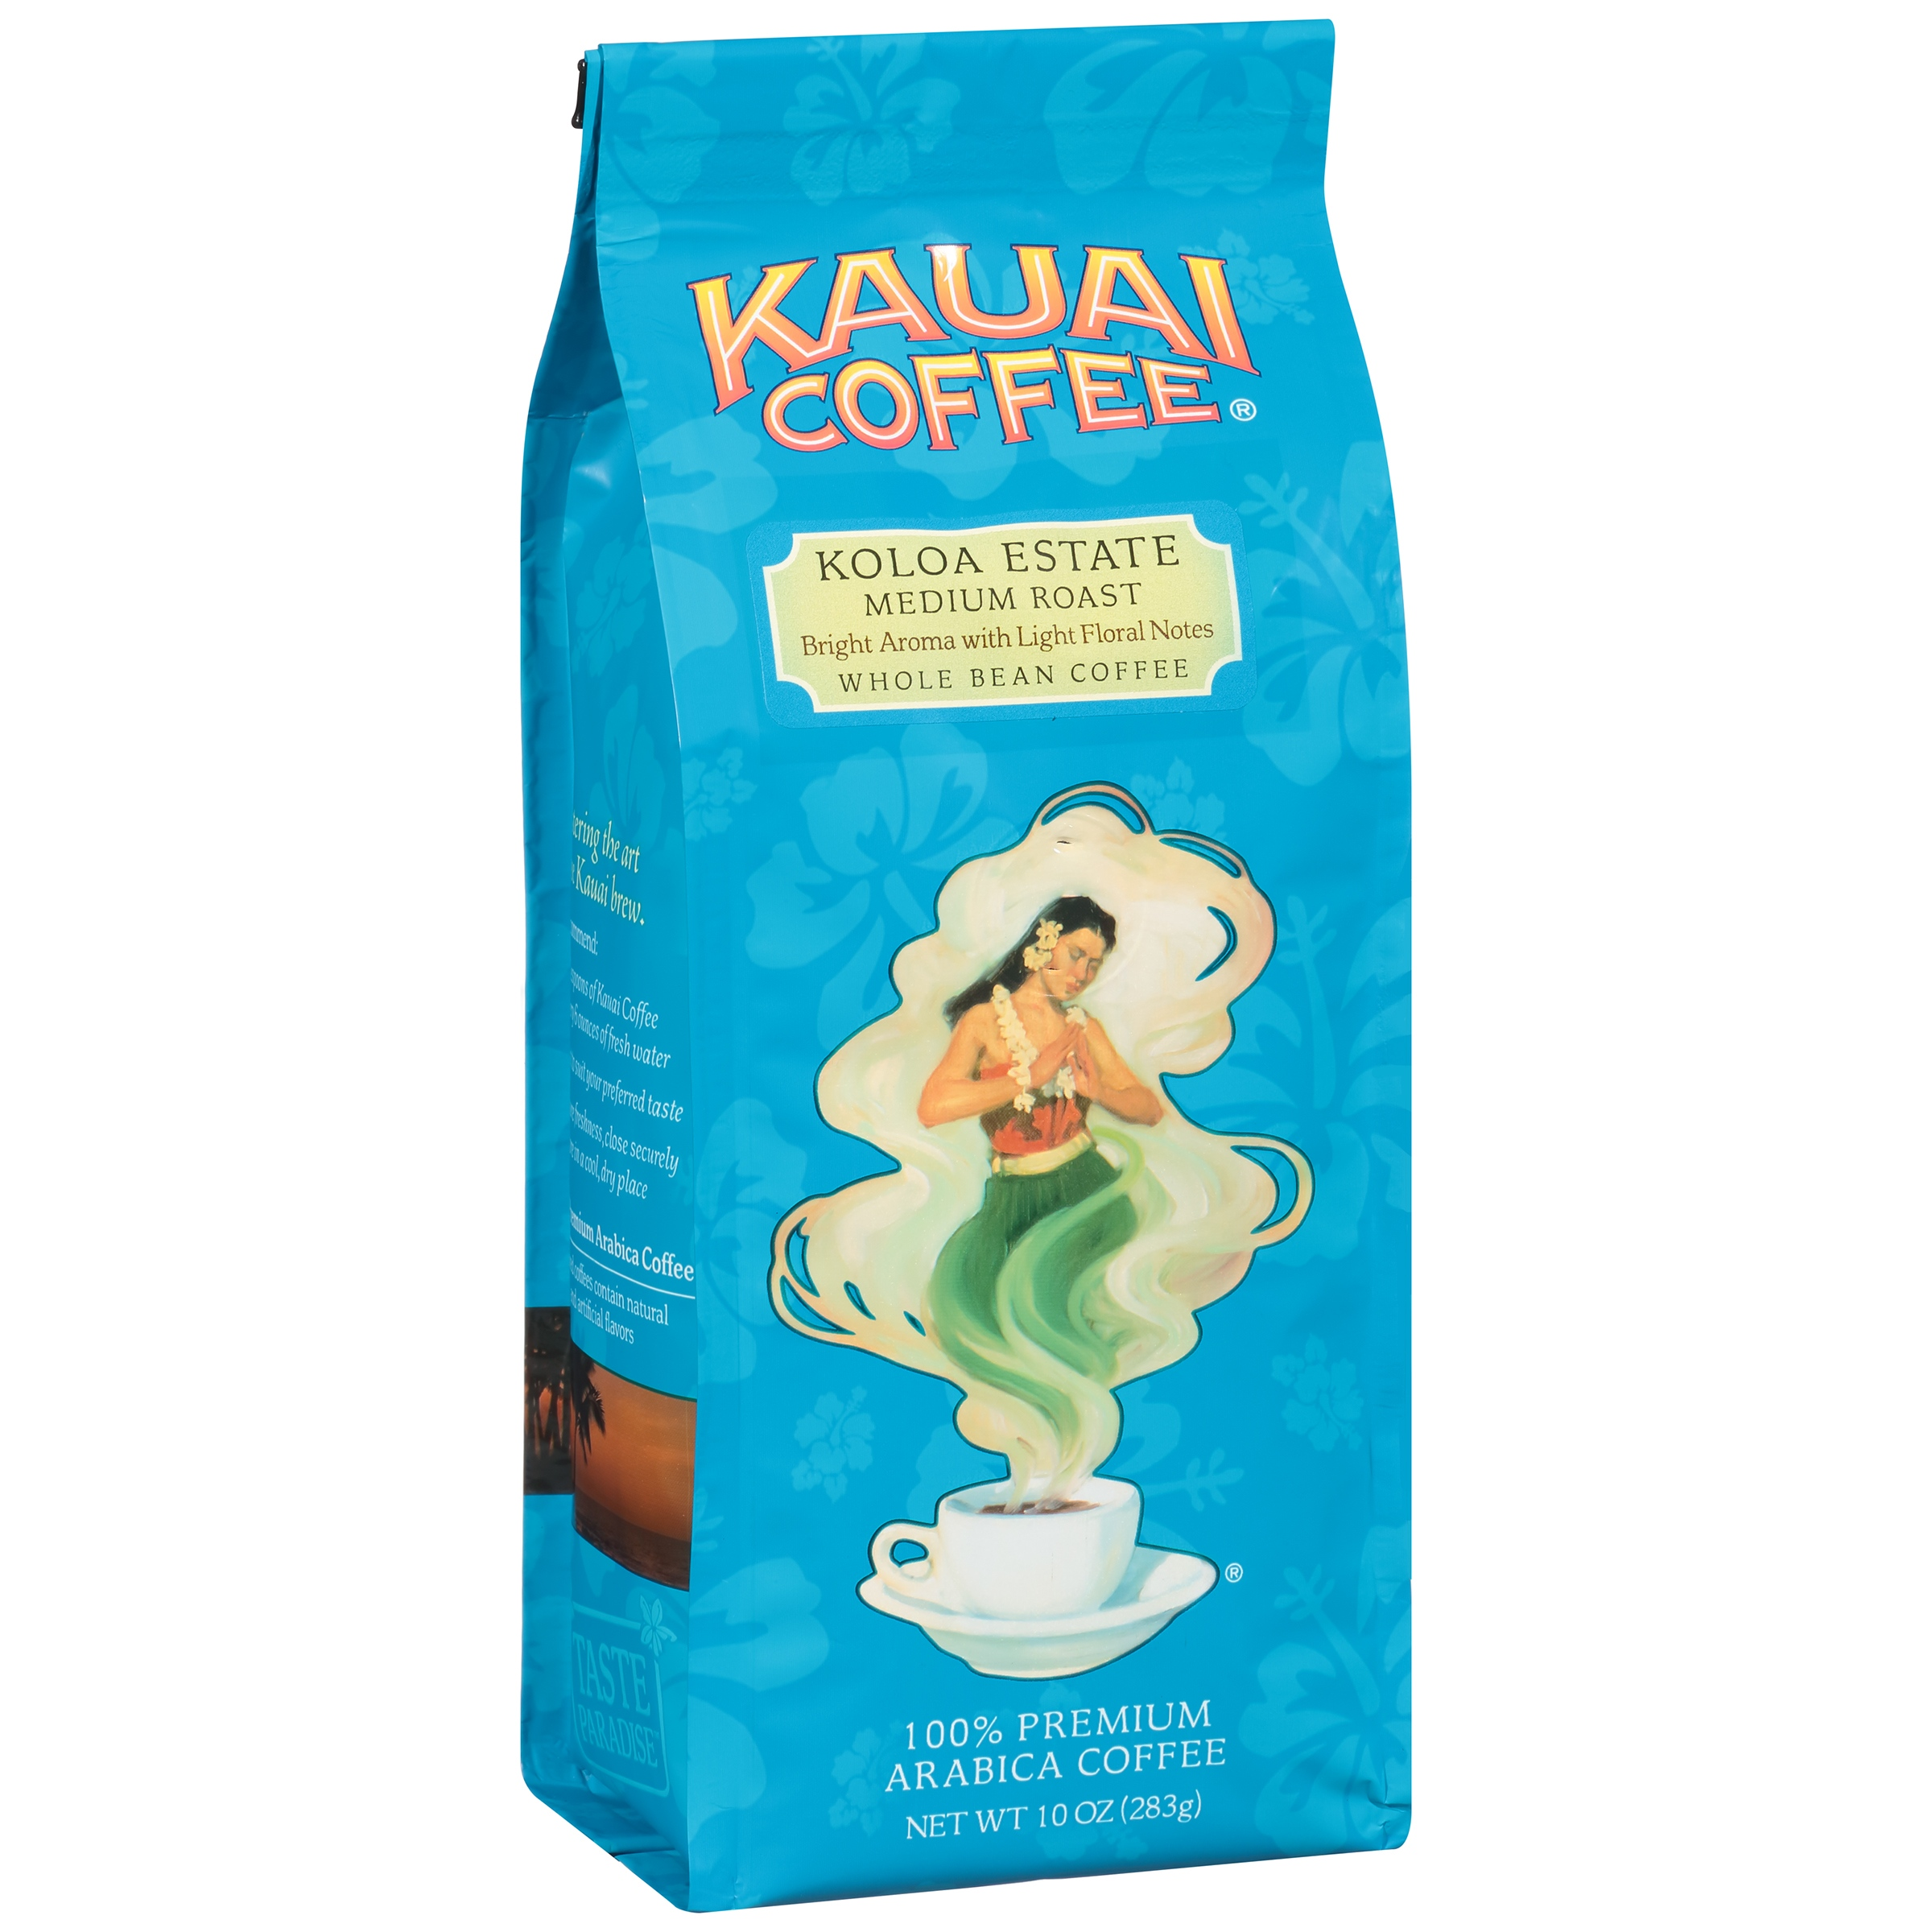 Kauai Coffee® Koloa Estate Medium Roast Whole Bean Hawaiian Coffee 10 oz. Bag